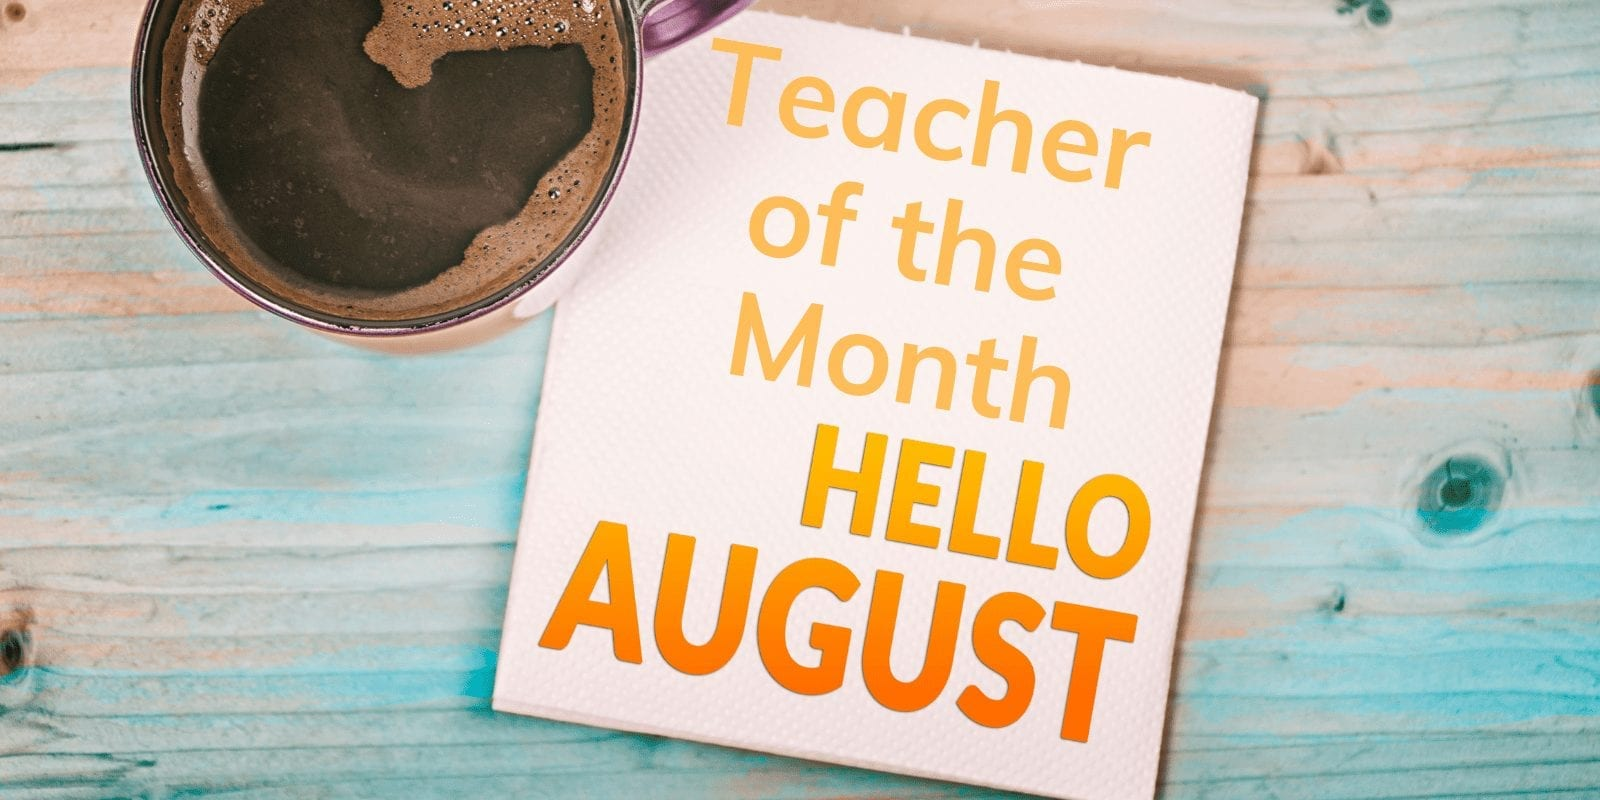 Little Sunshine's Playhouse Teacher of the Month August